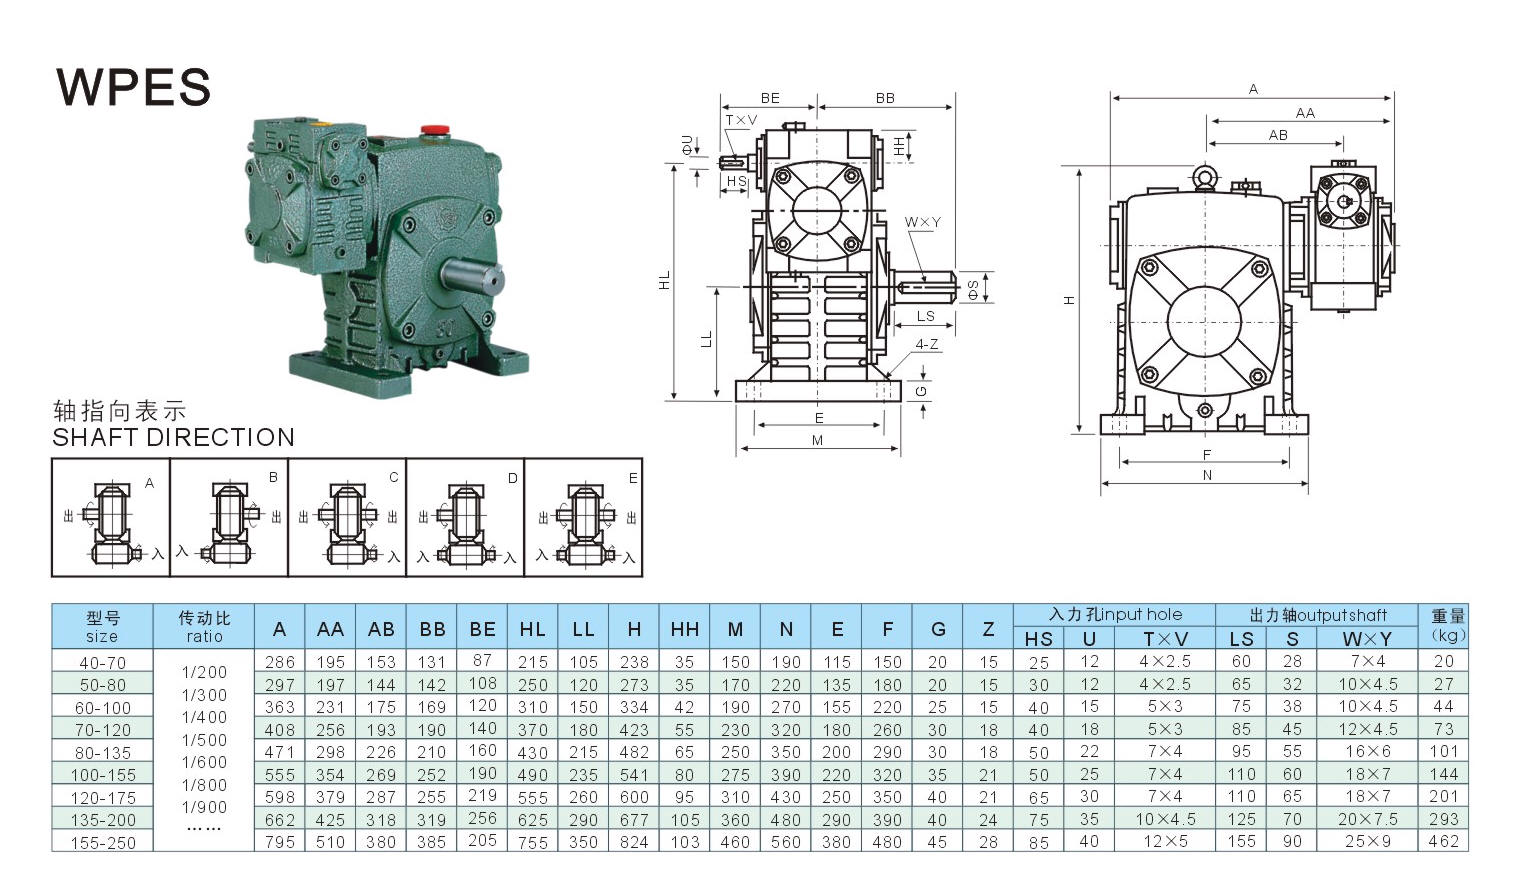 worm reducer, worm gearbox, worm speed reducer, worm gear unit, worm drive, worm reducers, worm gearboxes, worm speed reducers, worm gear units